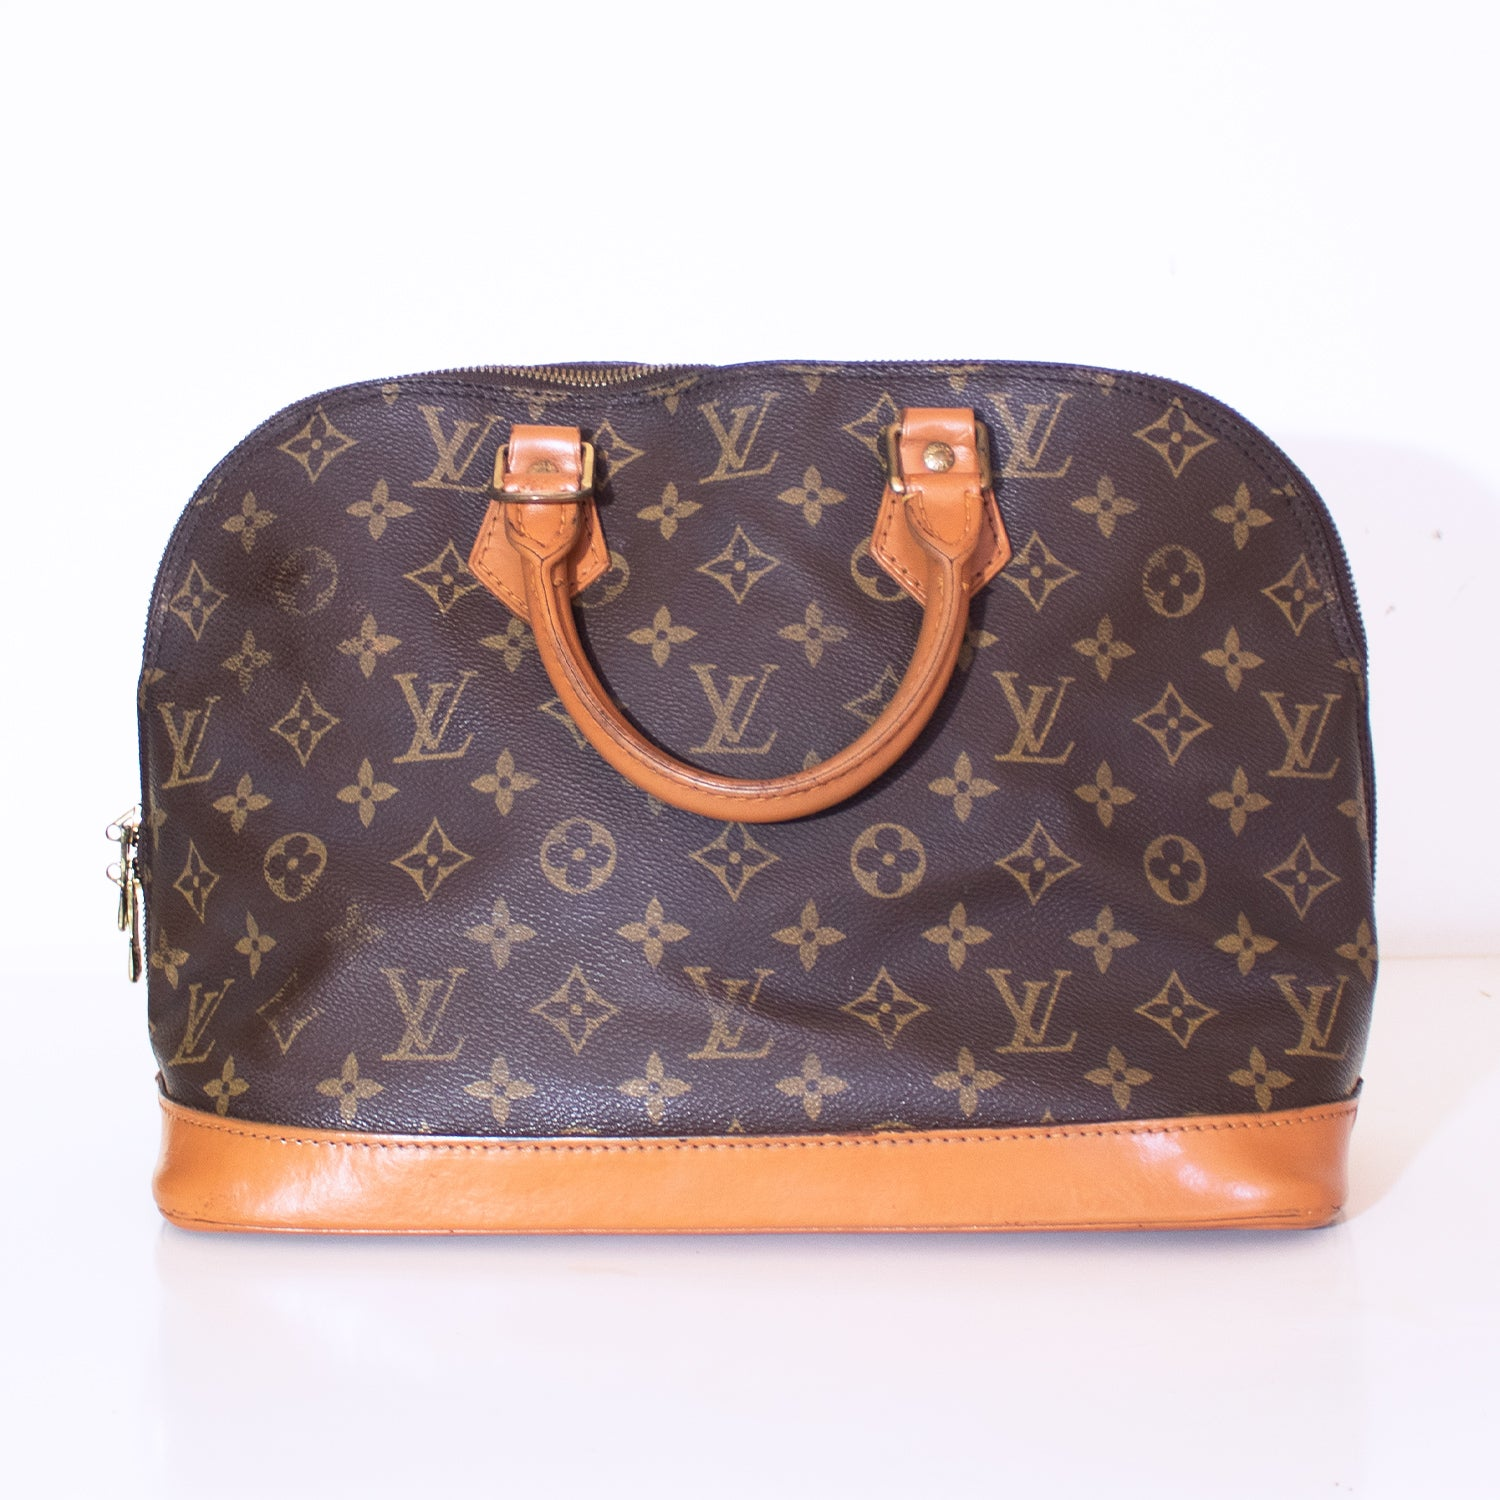 Mala Louis Vuitton Alma